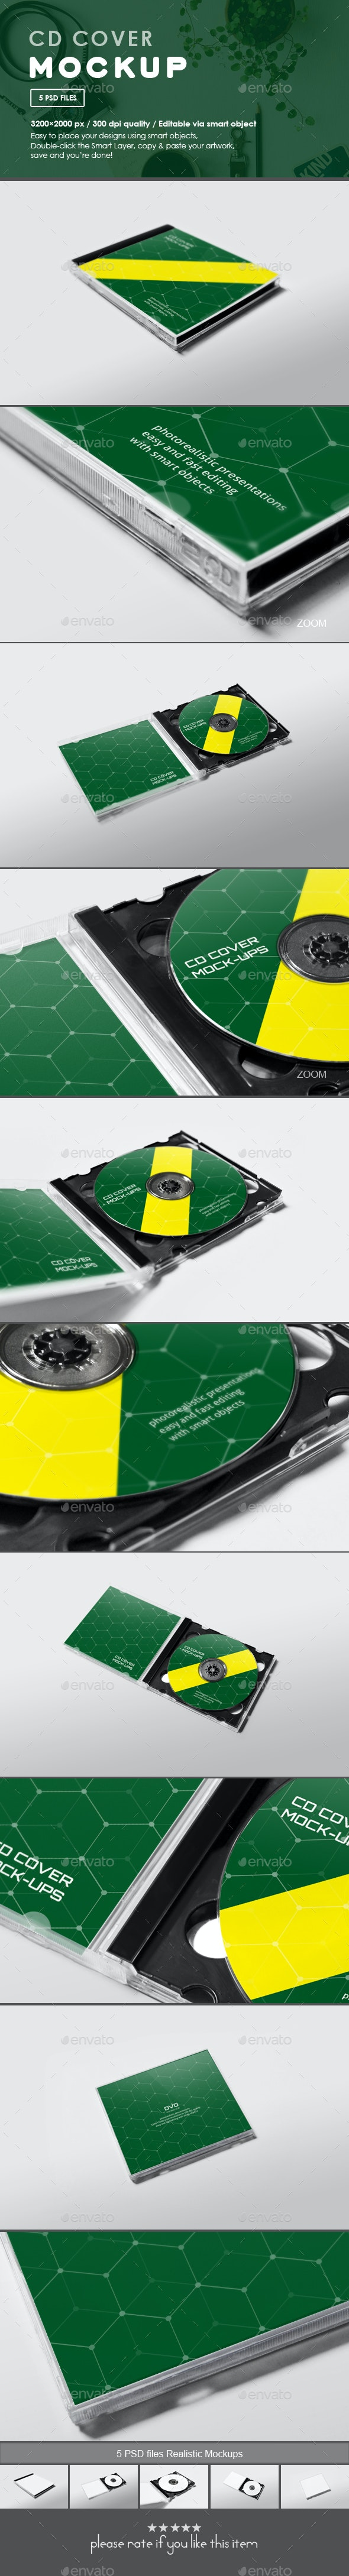 CD Cover Mockup - Miscellaneous Print